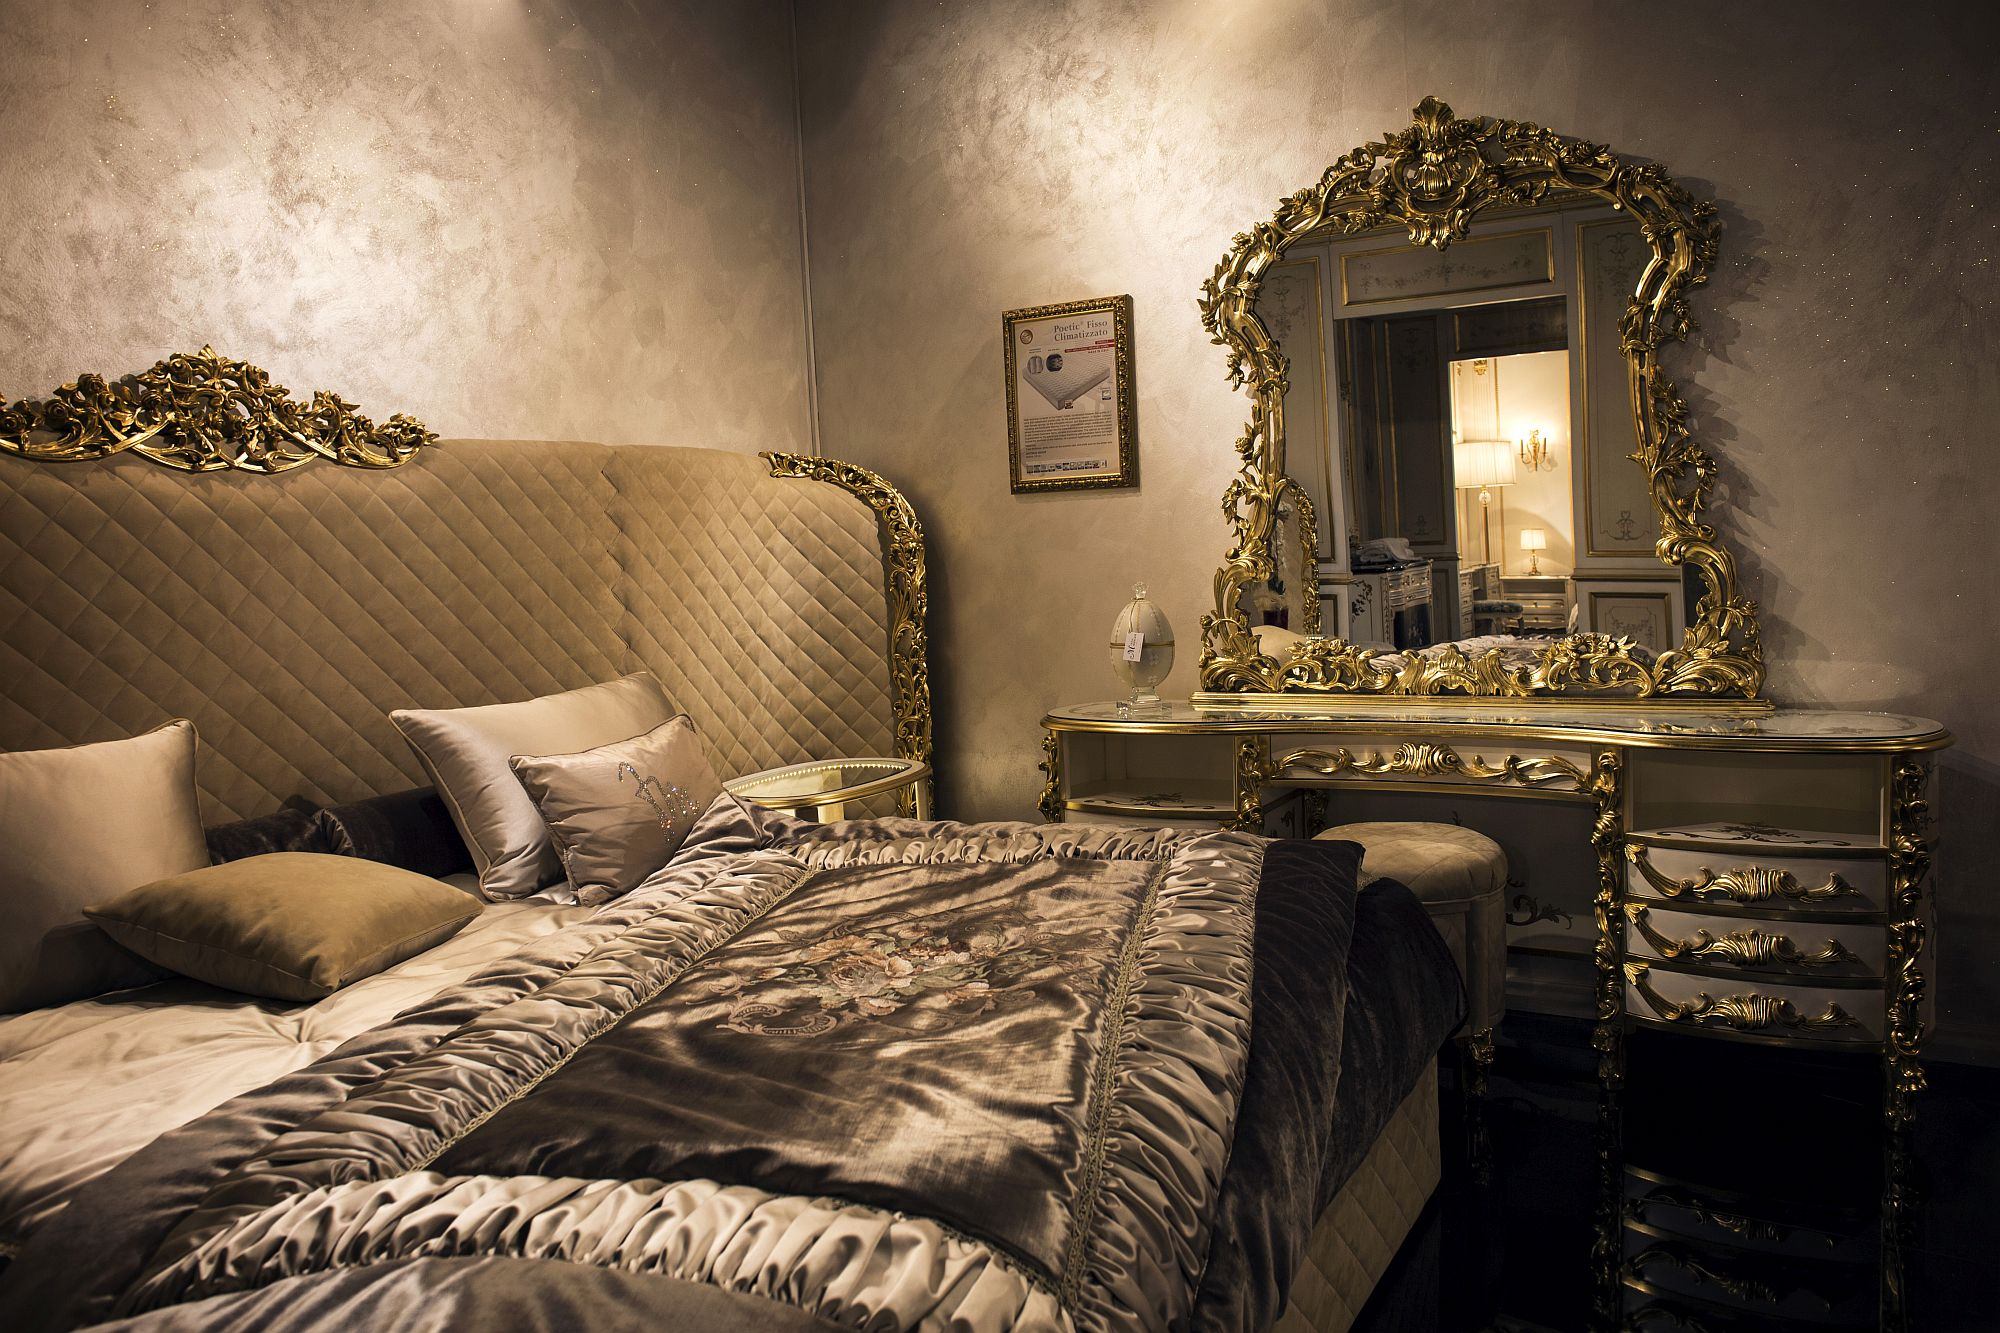 Exquisite mirror with gold frame for the classic bedroom makeup vanity